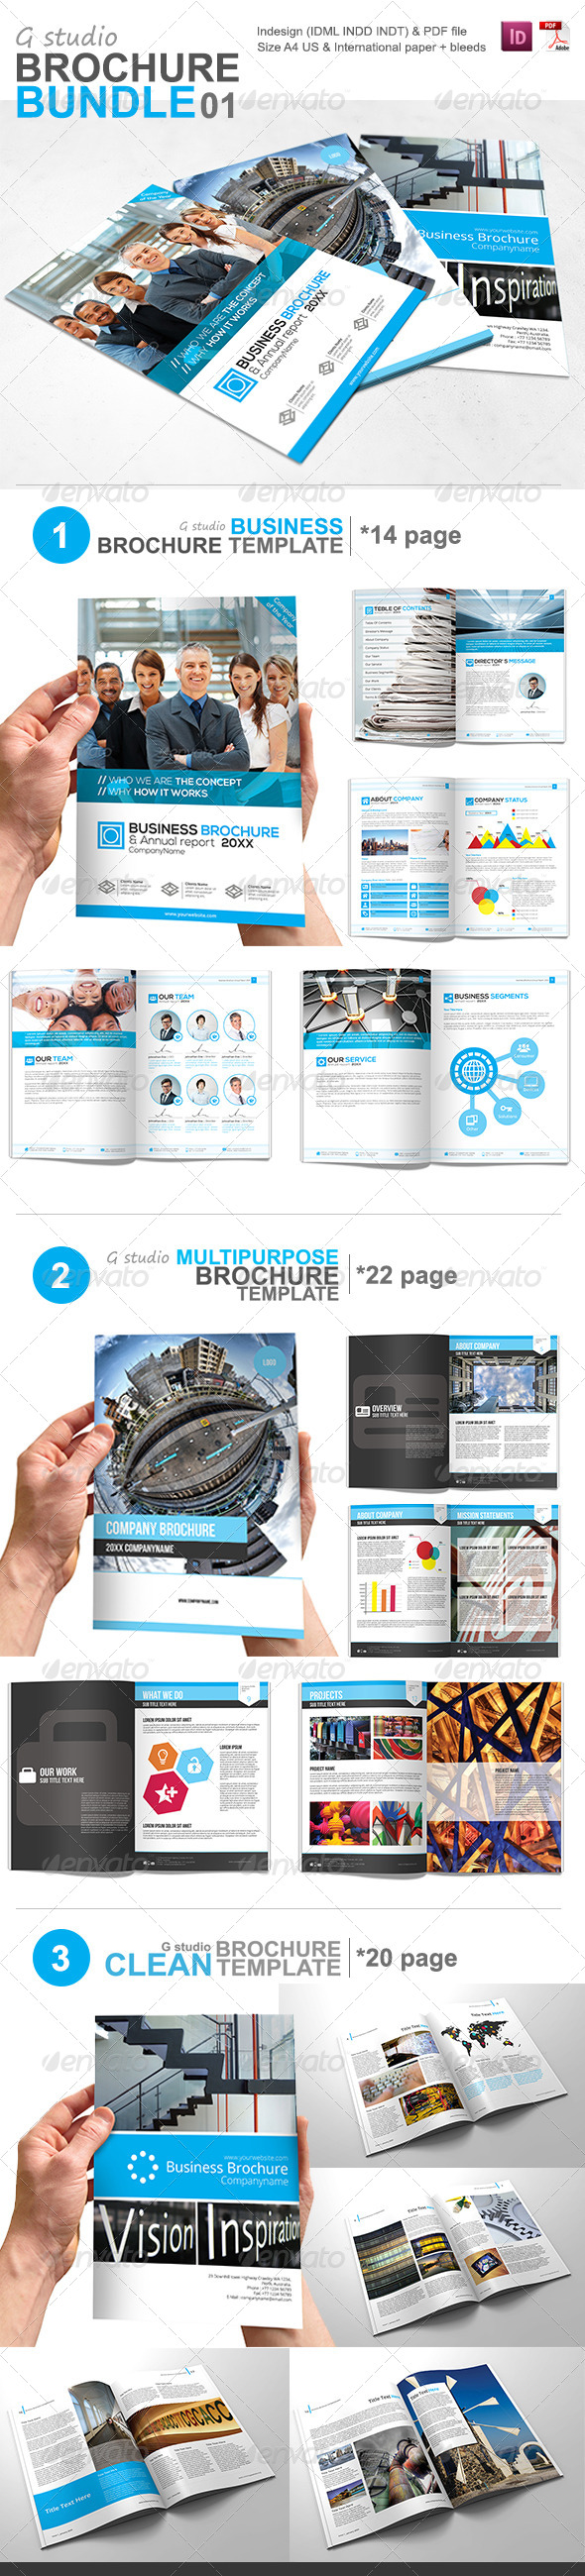 Gstudio Brochure Bundle 01 - Corporate Brochures